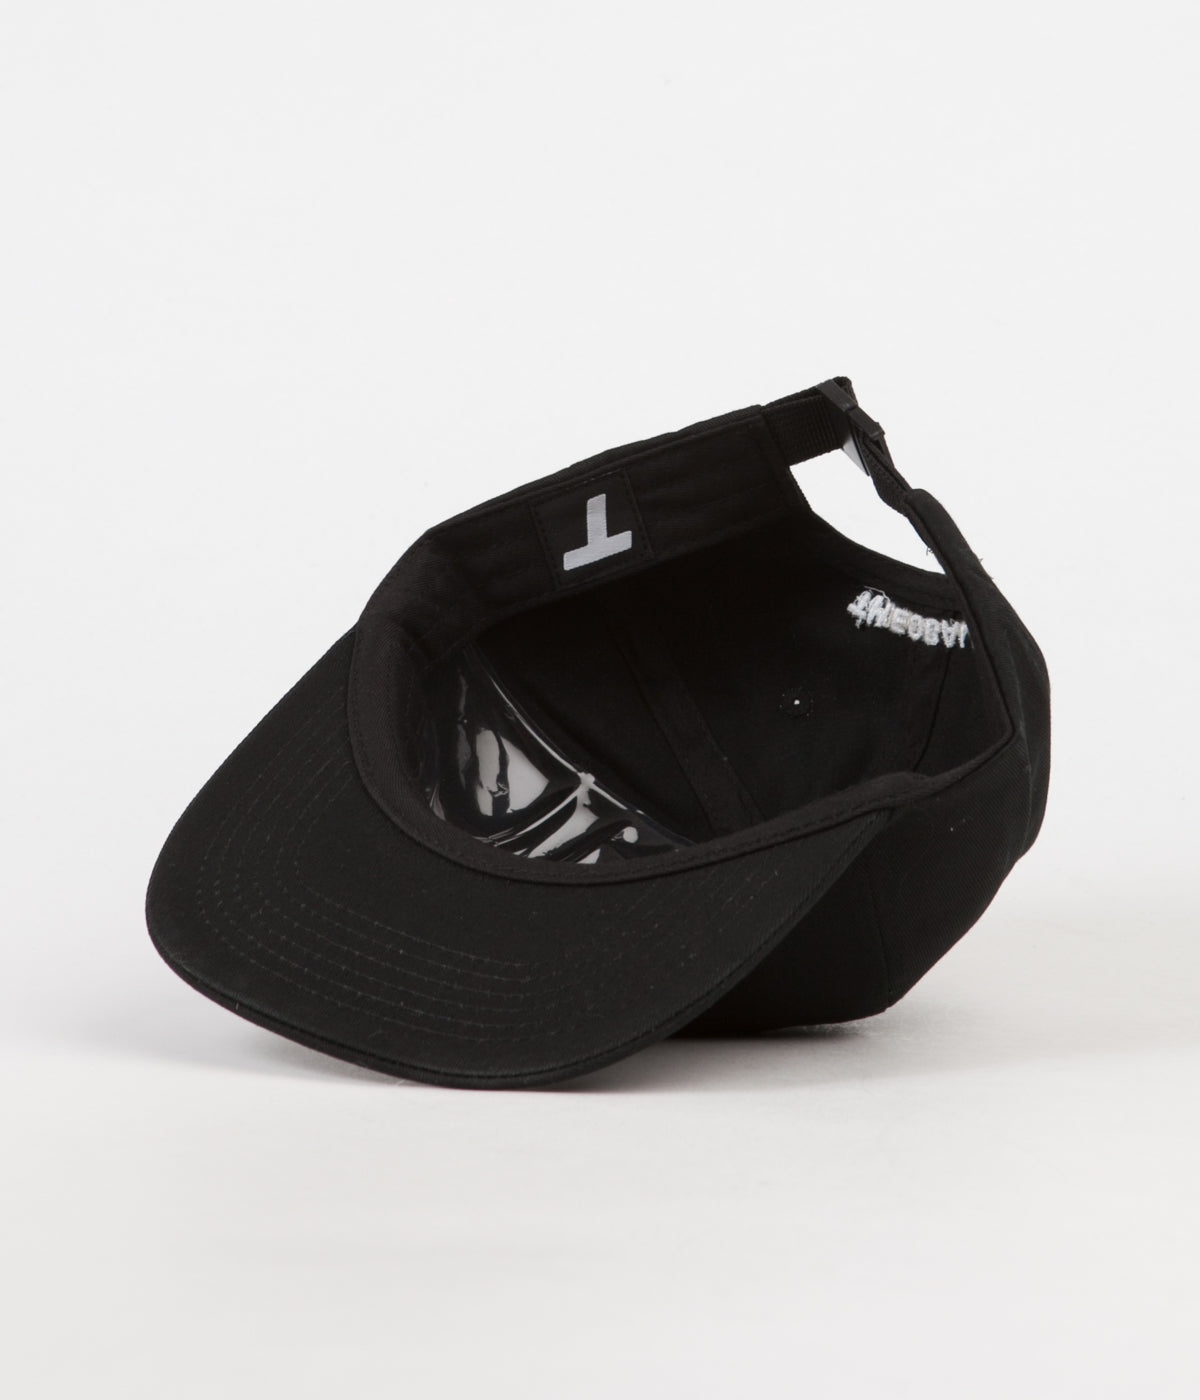 Theobalds Cap Co. Classic T 6 Panel Cap - Black / White